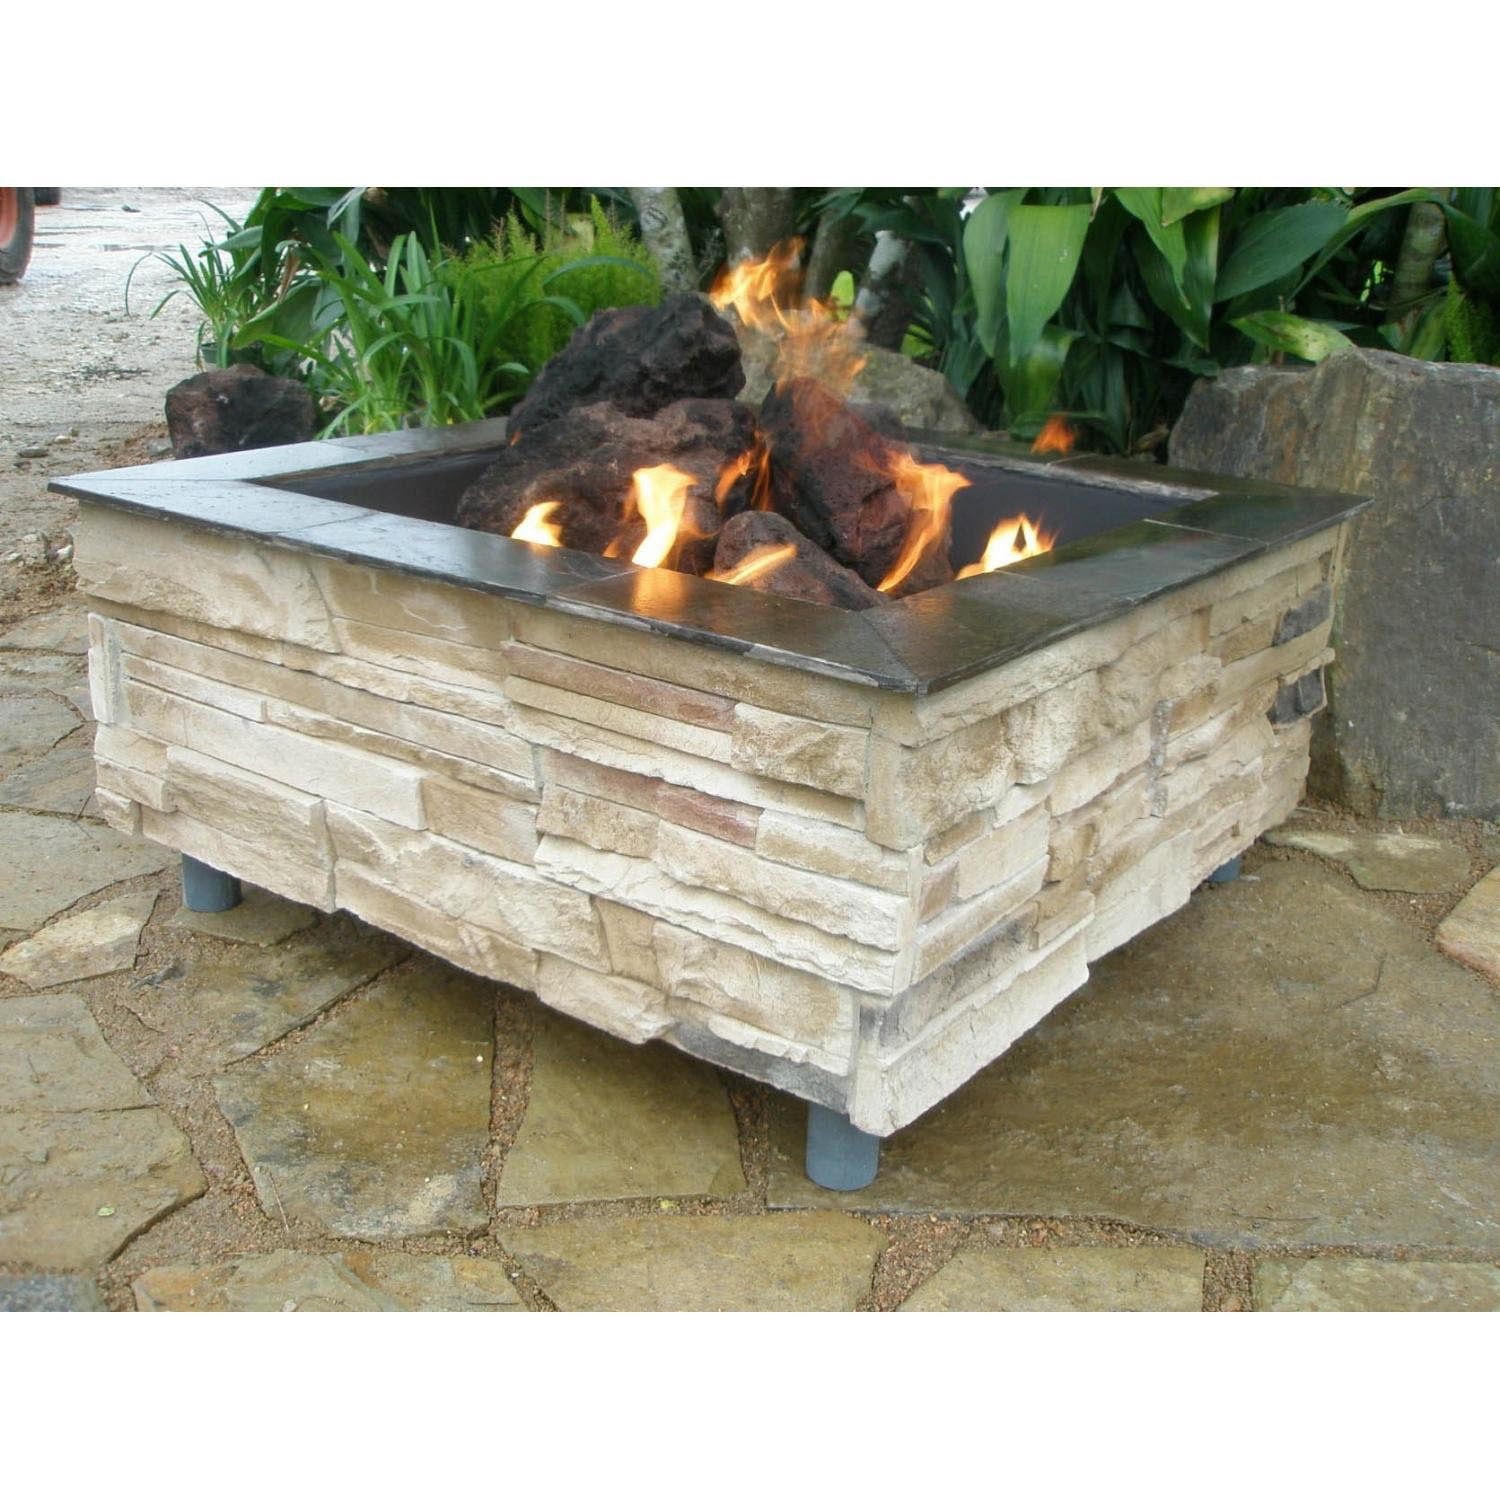 Square Fire Pit Designs : Square gas fire pit design ideas